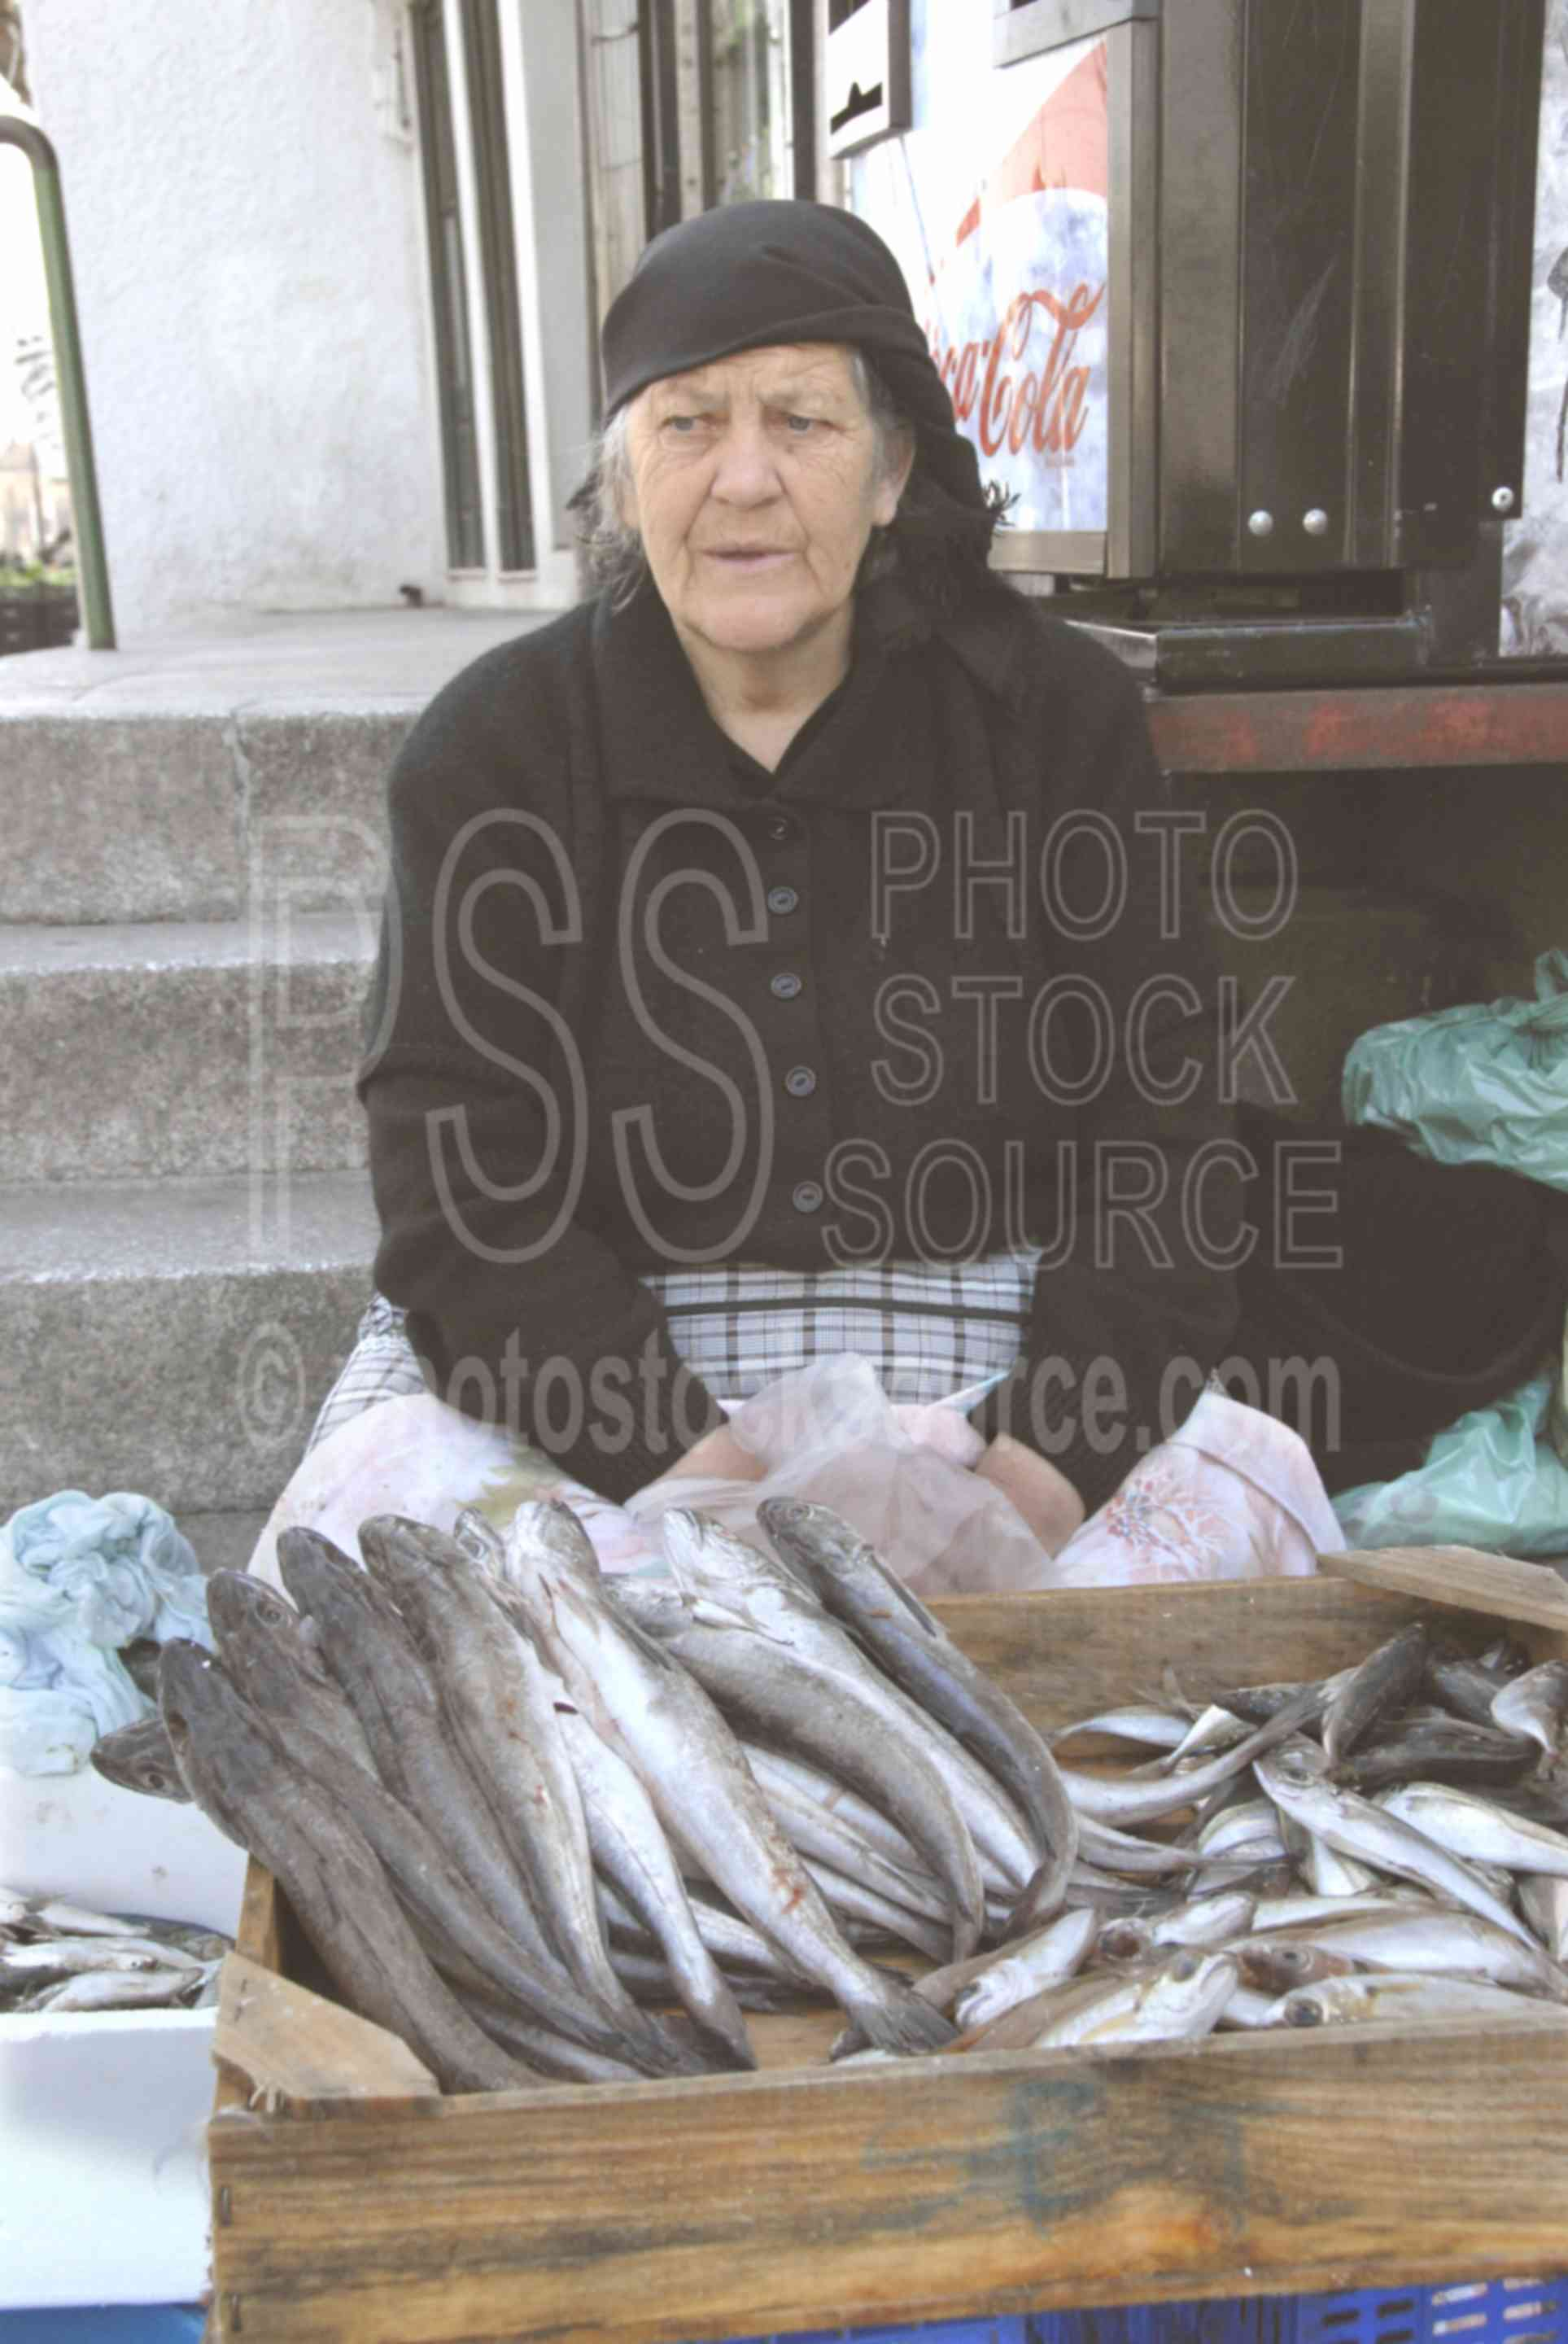 Fish Seller,porto,fish,food,fishmonger,vendor,seller,selling